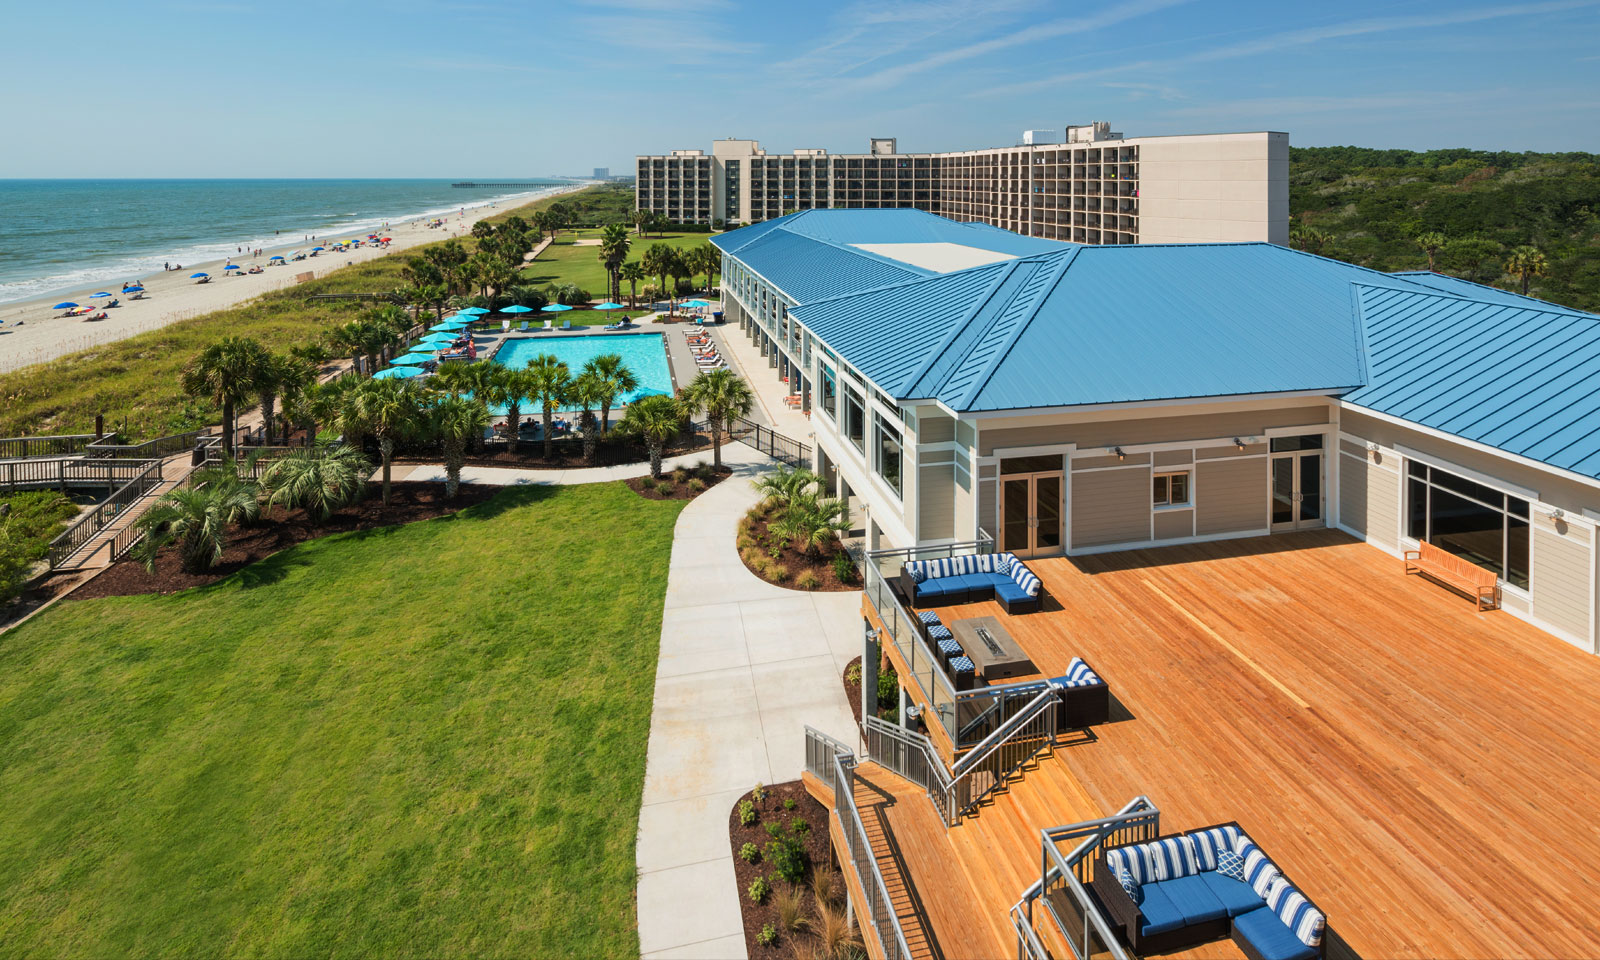 The DoubleTree Resort by Hilton, Myrtle Beach Oceanfront, Tee Up to Grand Strand Hotel for Holiday Fun